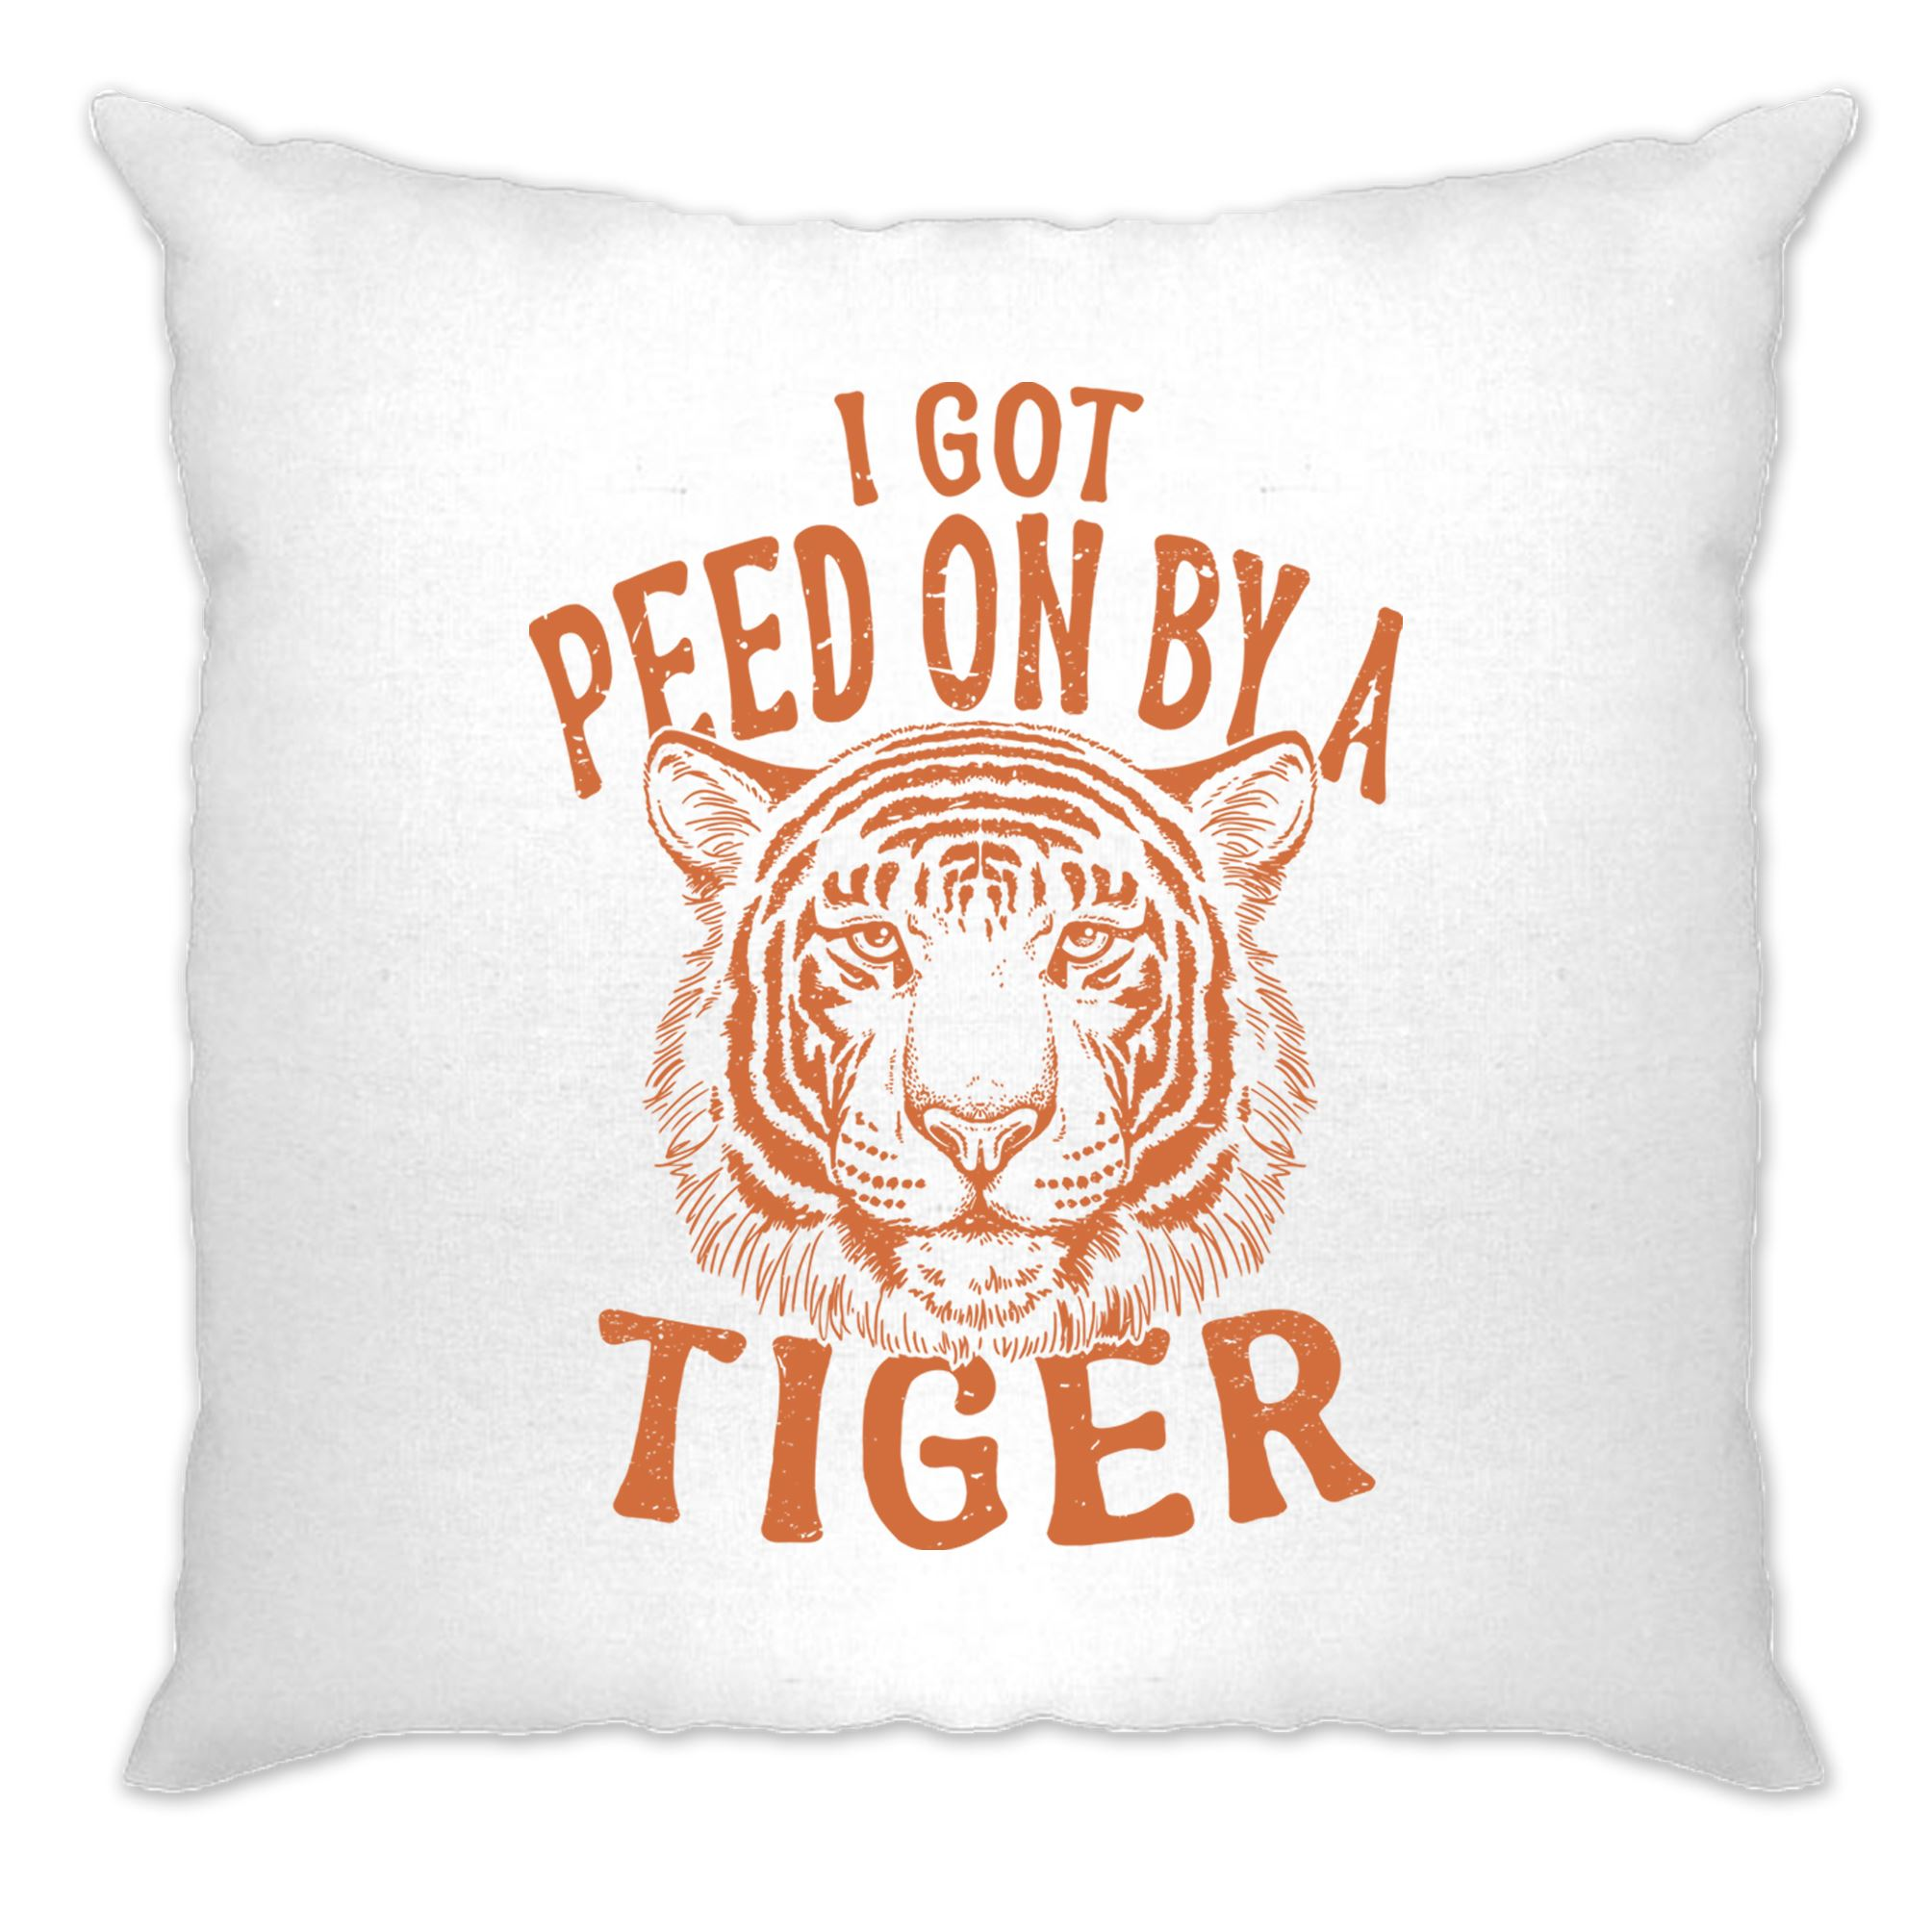 Funny Cushion Cover I Got Peed On By A Tiger